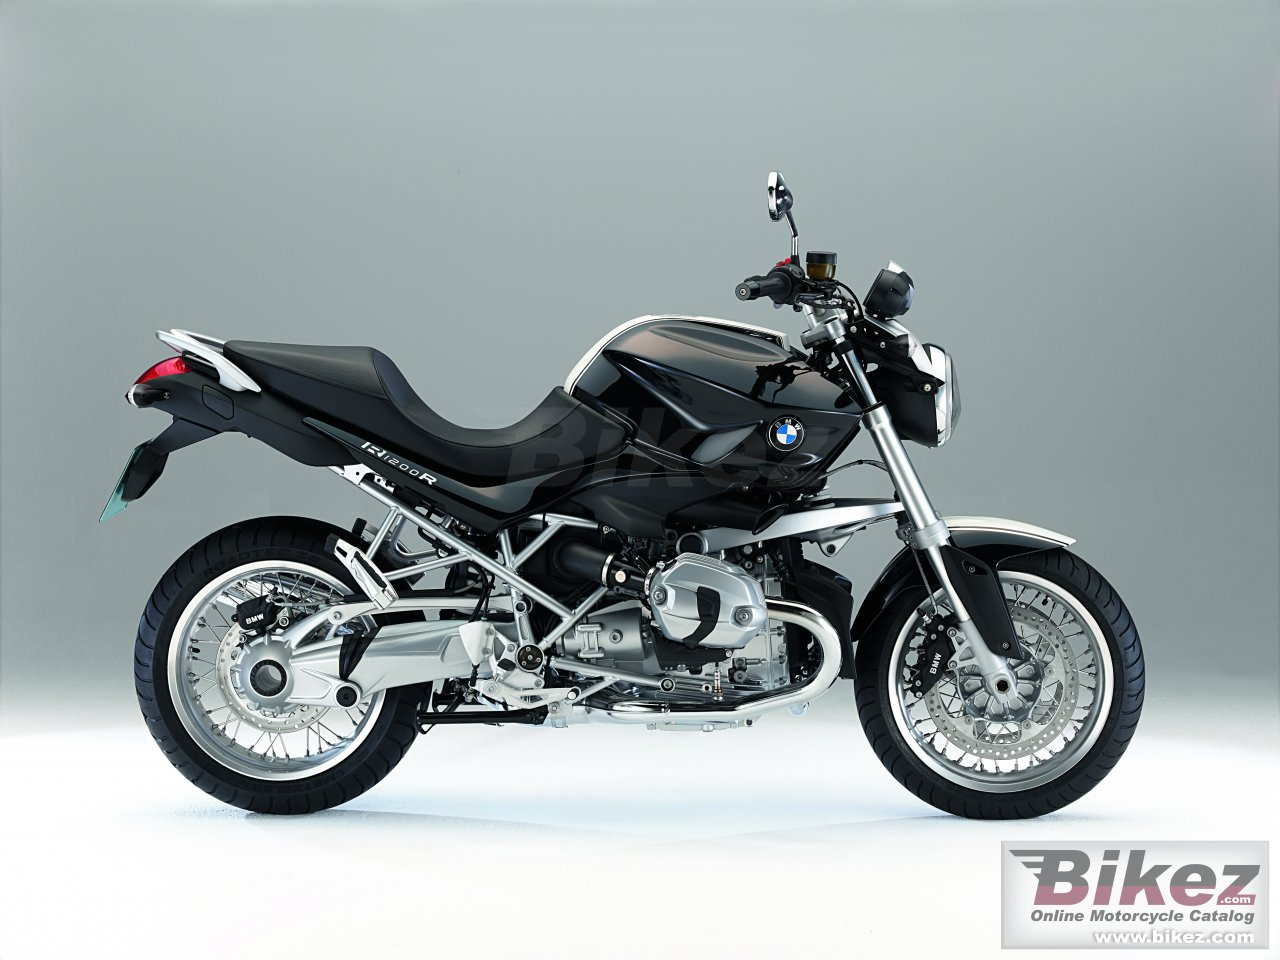 Big BMW r 1200 r classic picture and wallpaper from Bikez.com